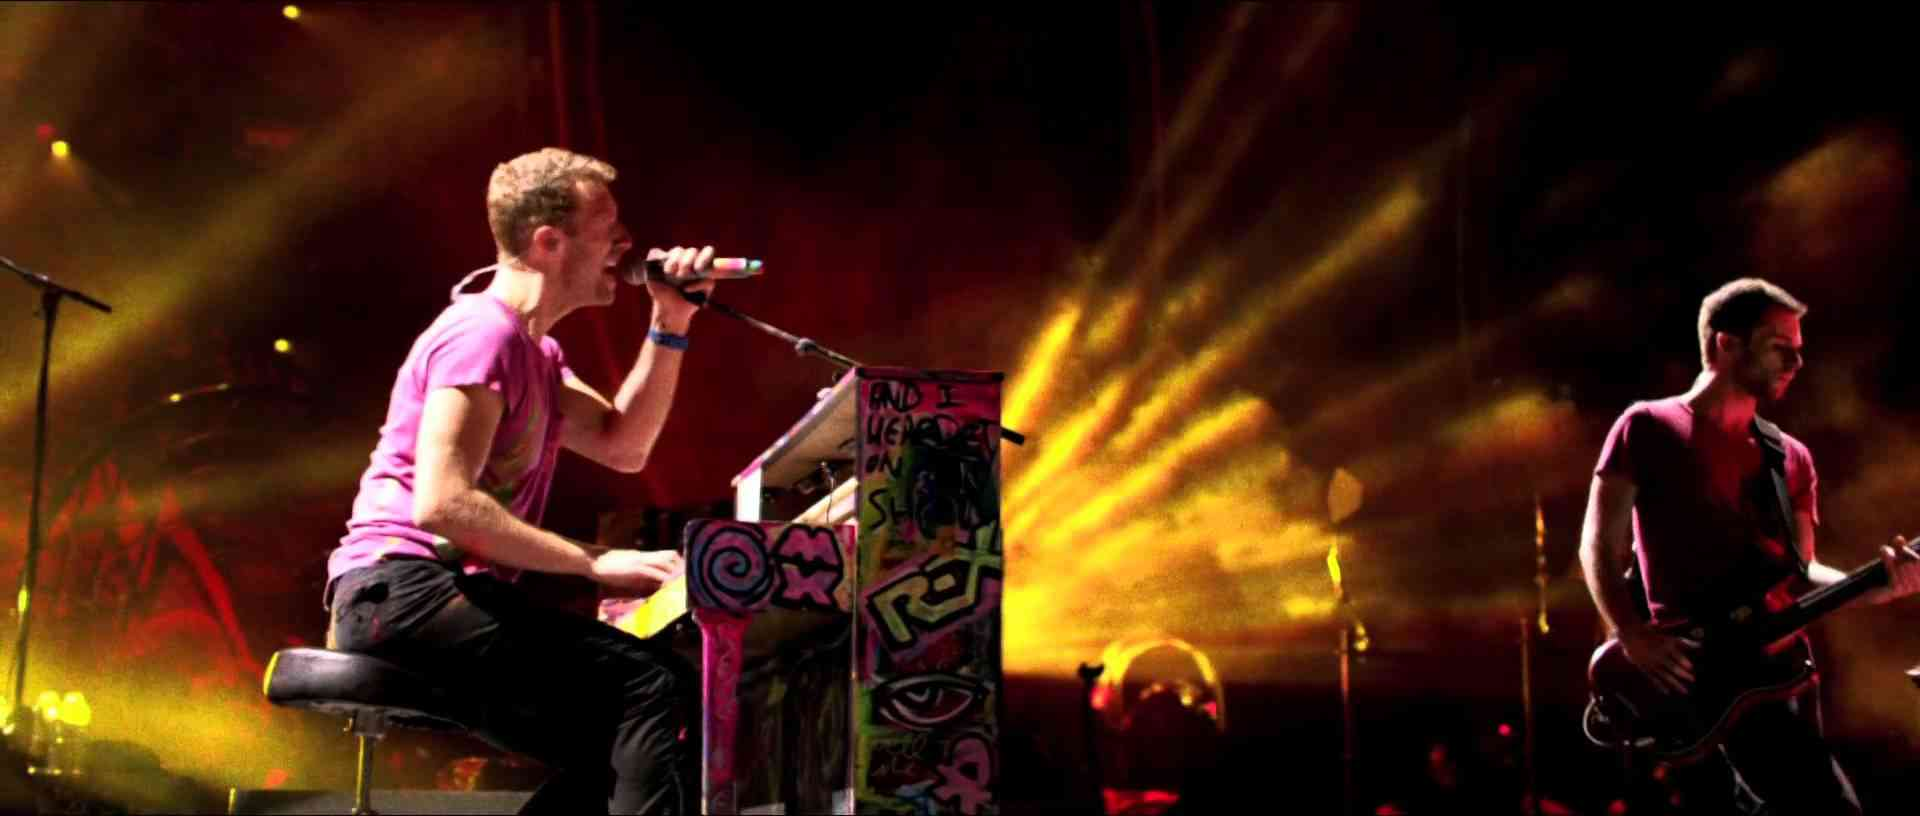 Coldplay - Fix You [Live 2012] - YouTube